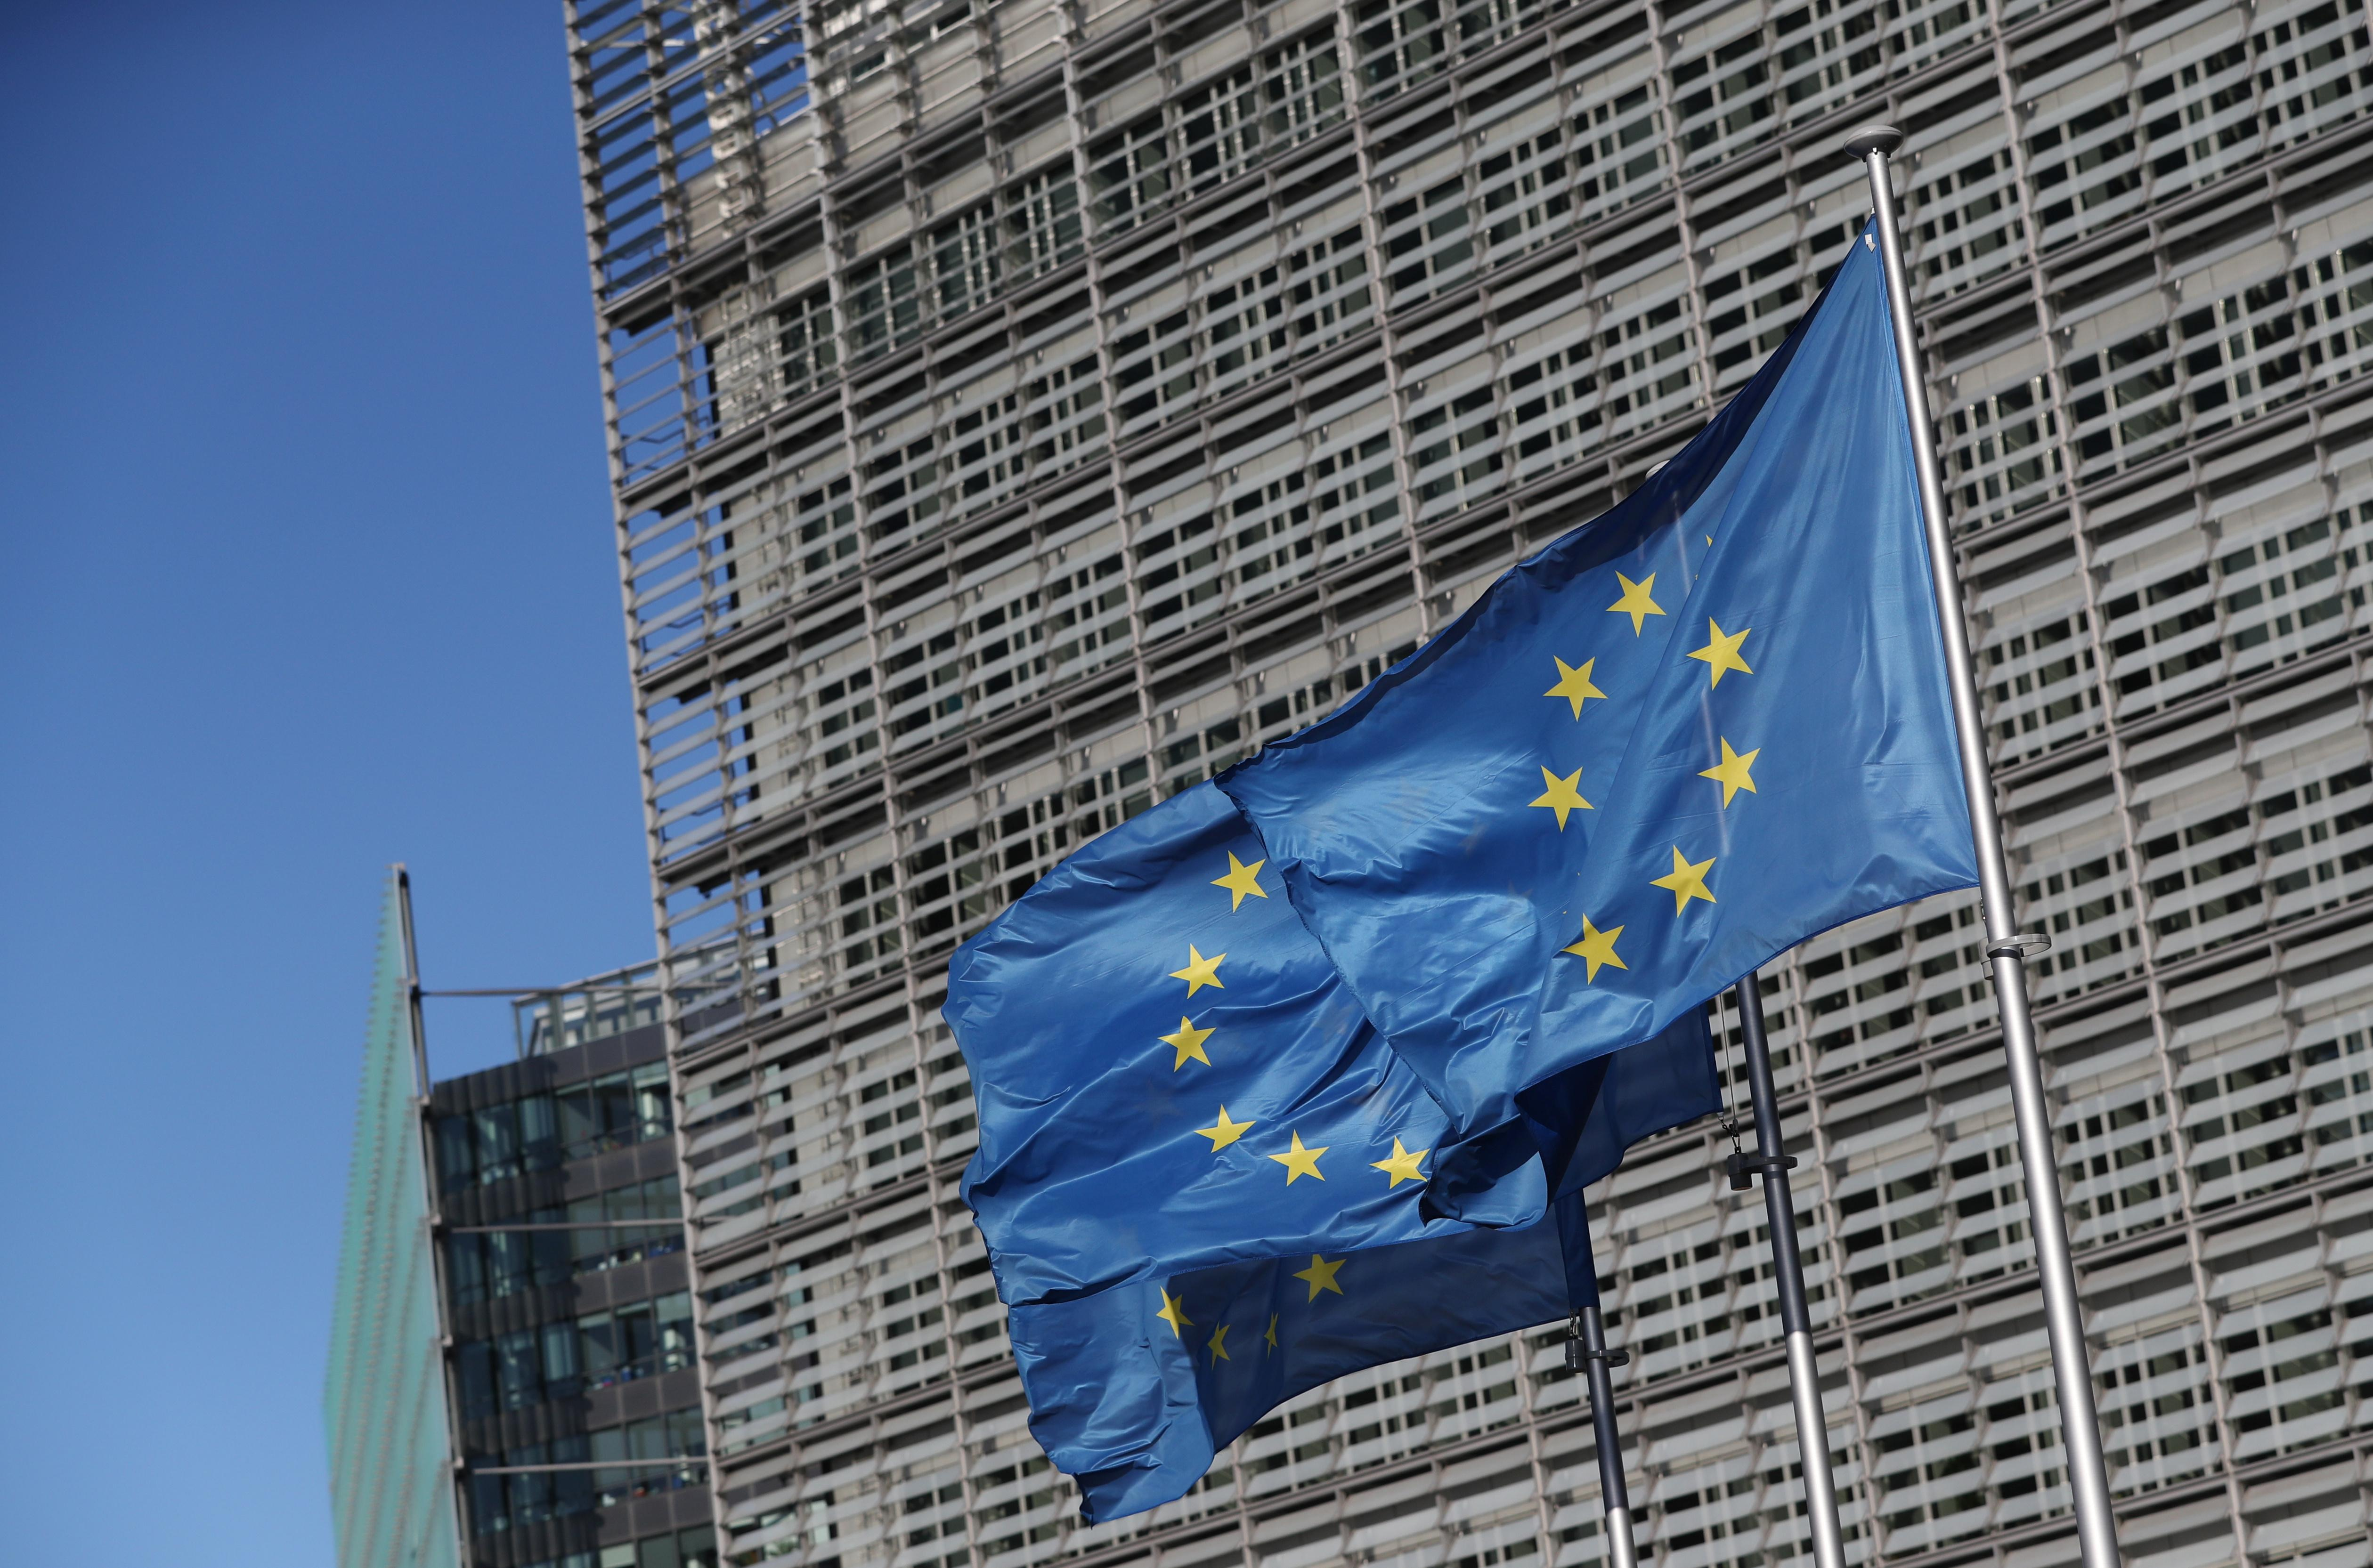 Italy readies banking union proposals after winning ESM delay